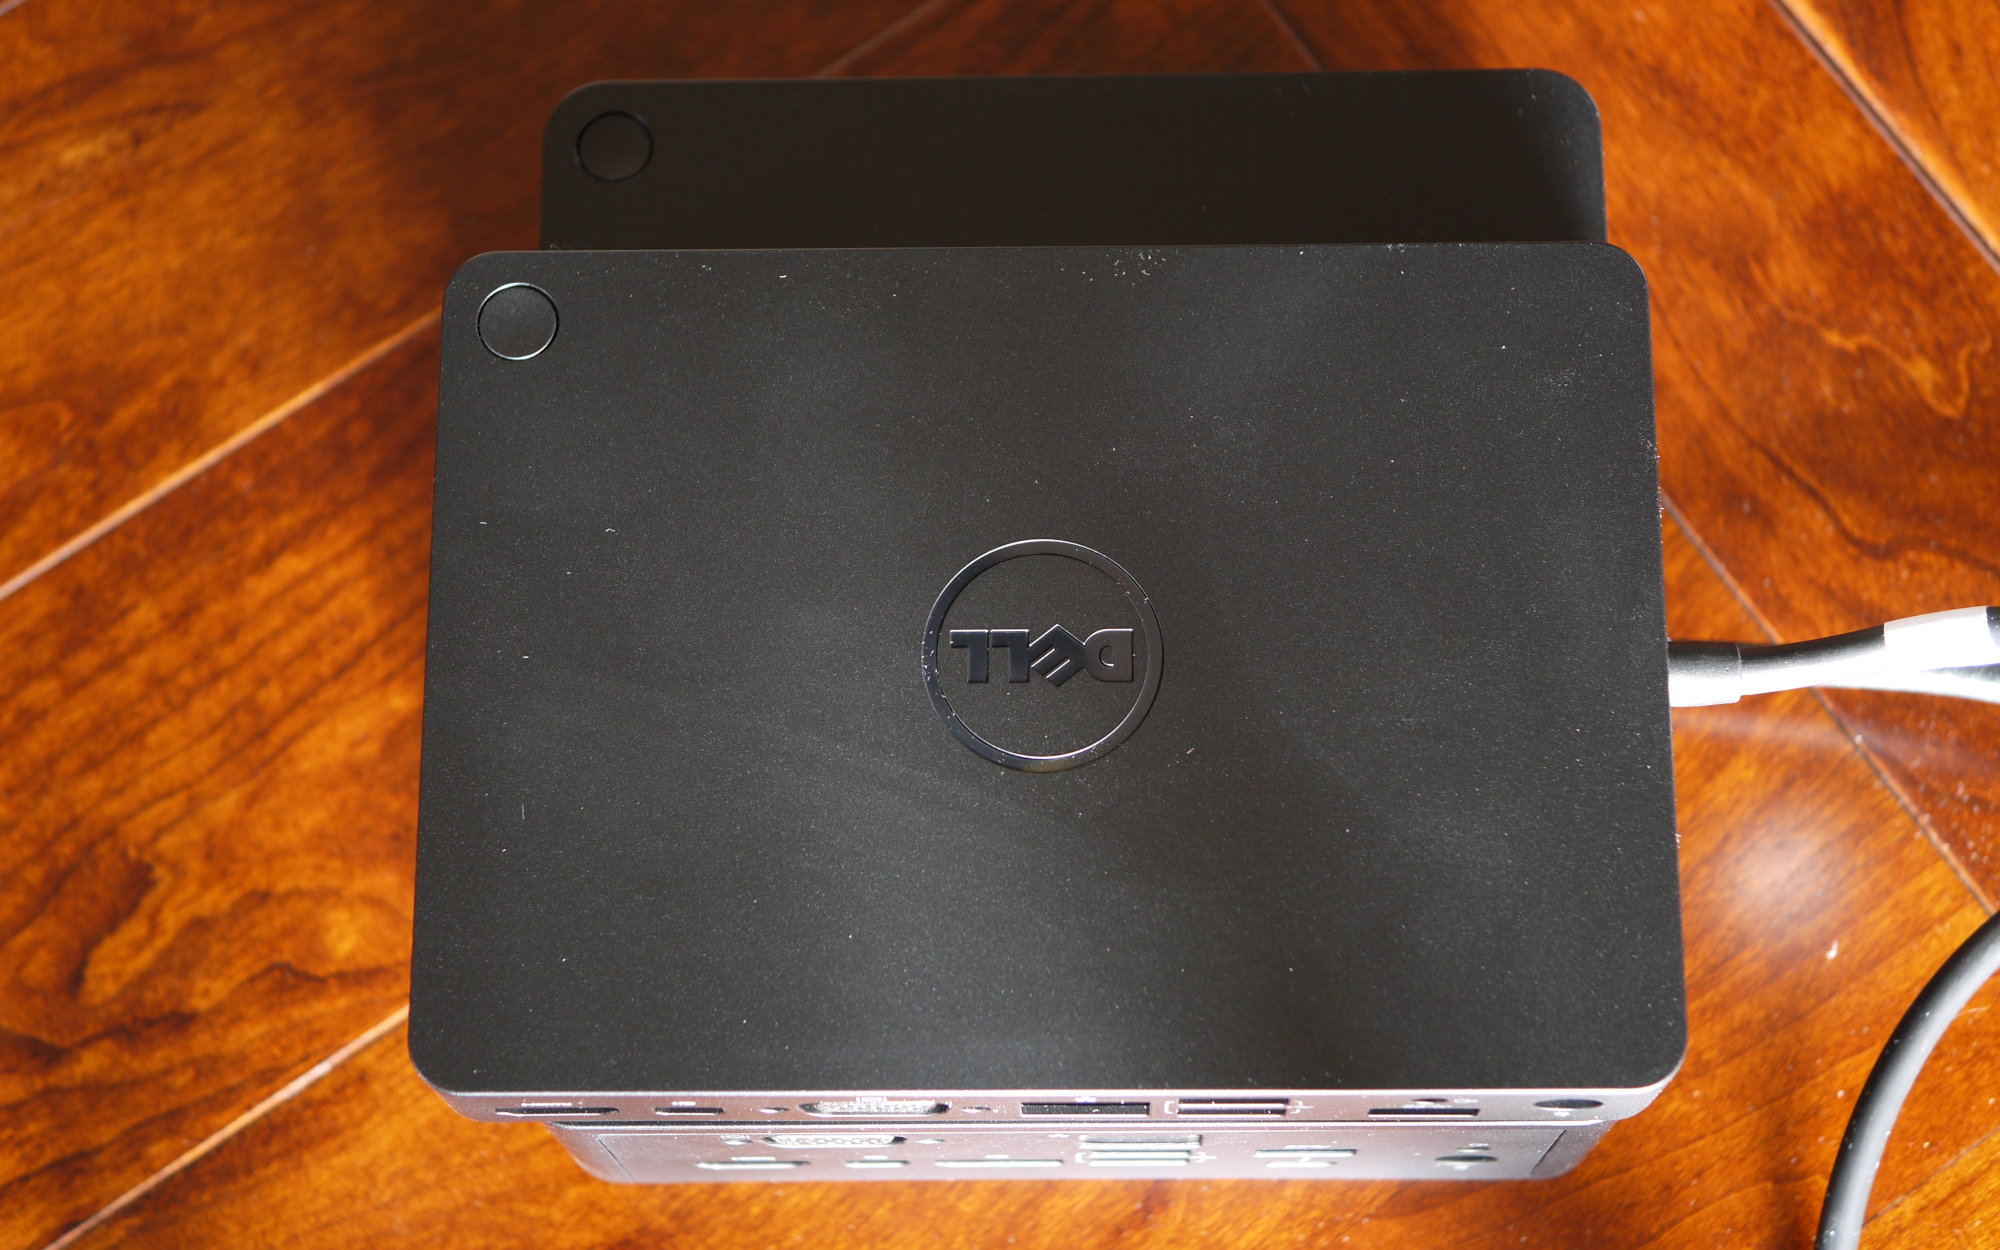 WD15 on Top of TB15 Top View